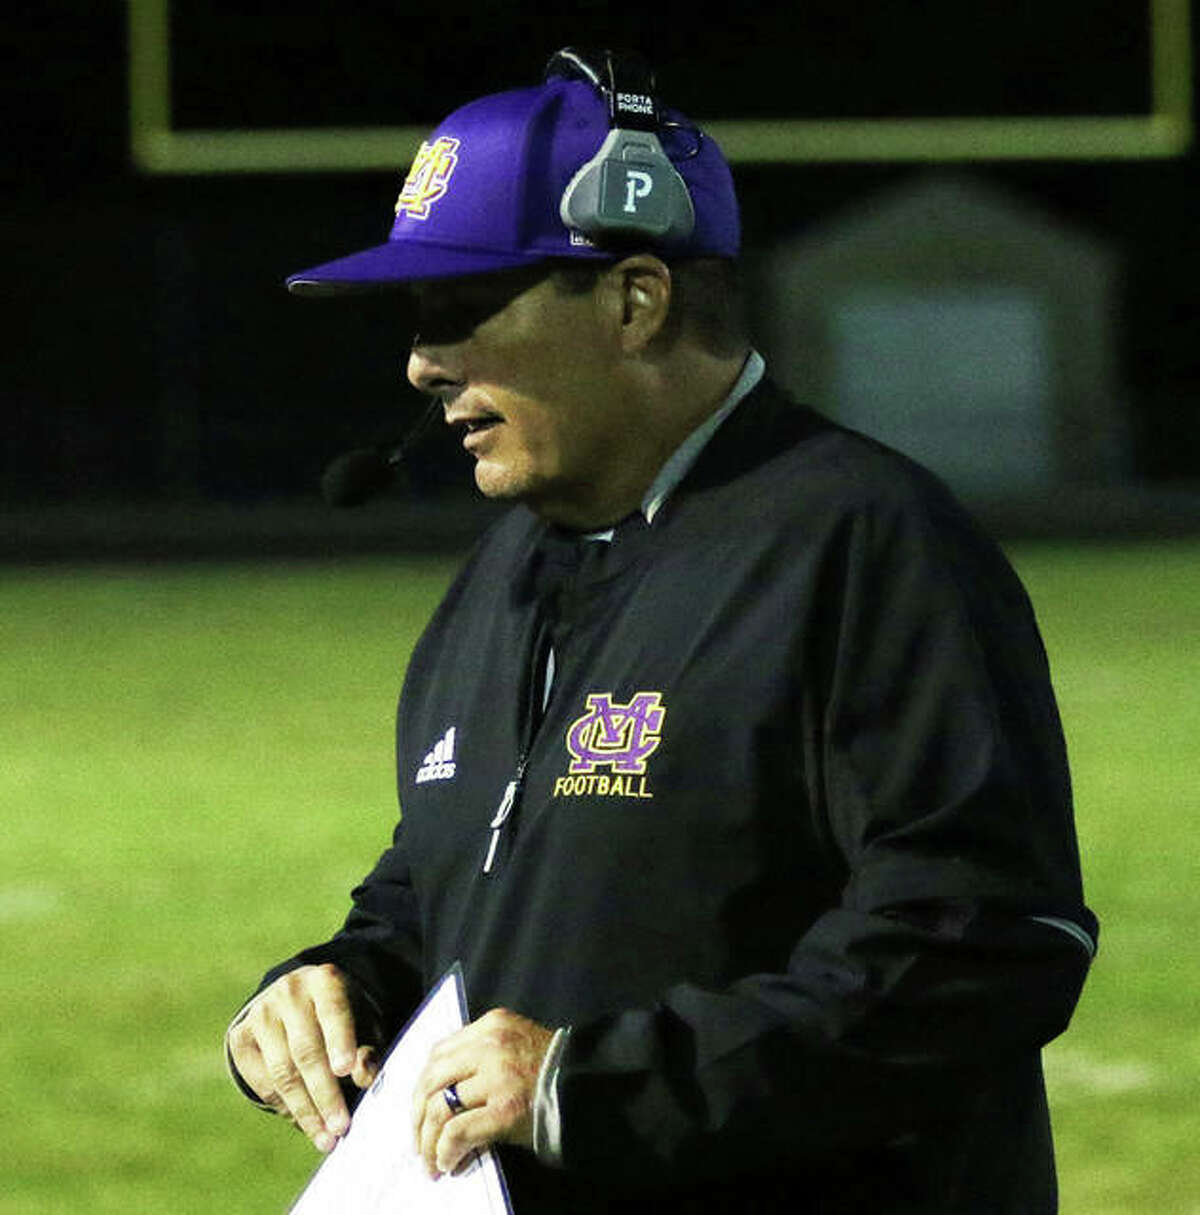 CM coach Mike Parmentier's Eagles will open the 2021 spring season at Waterloo before opening at home in Week 2 against Jersey under the Mississippi Valley Conference's new Bowl Series format announced Monday.